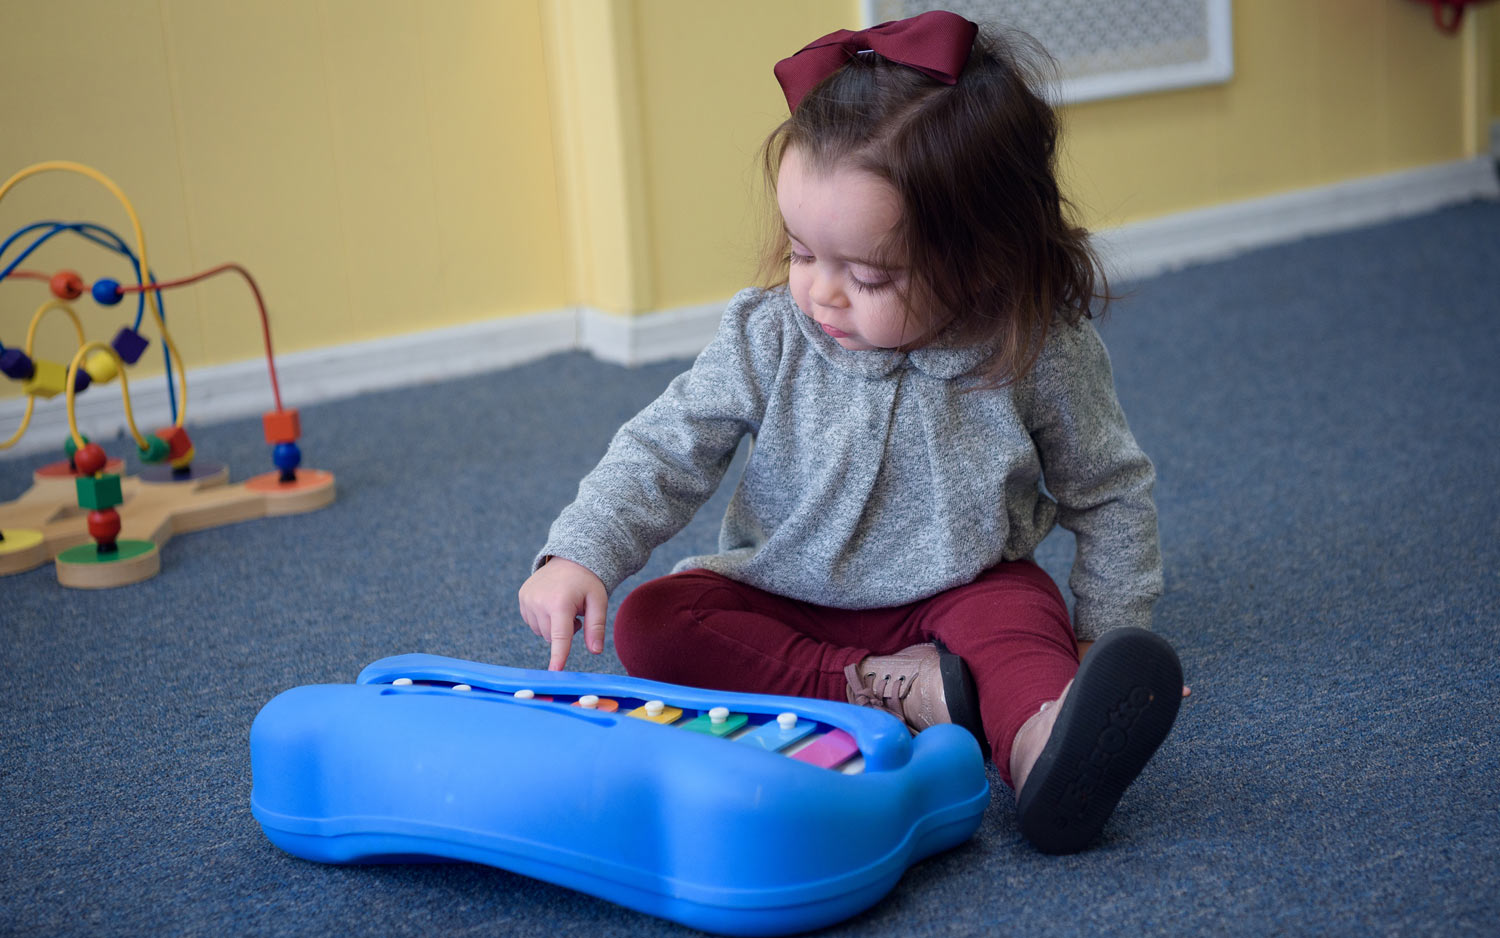 Girl from the Mommy and Me Division playing with a xylophone